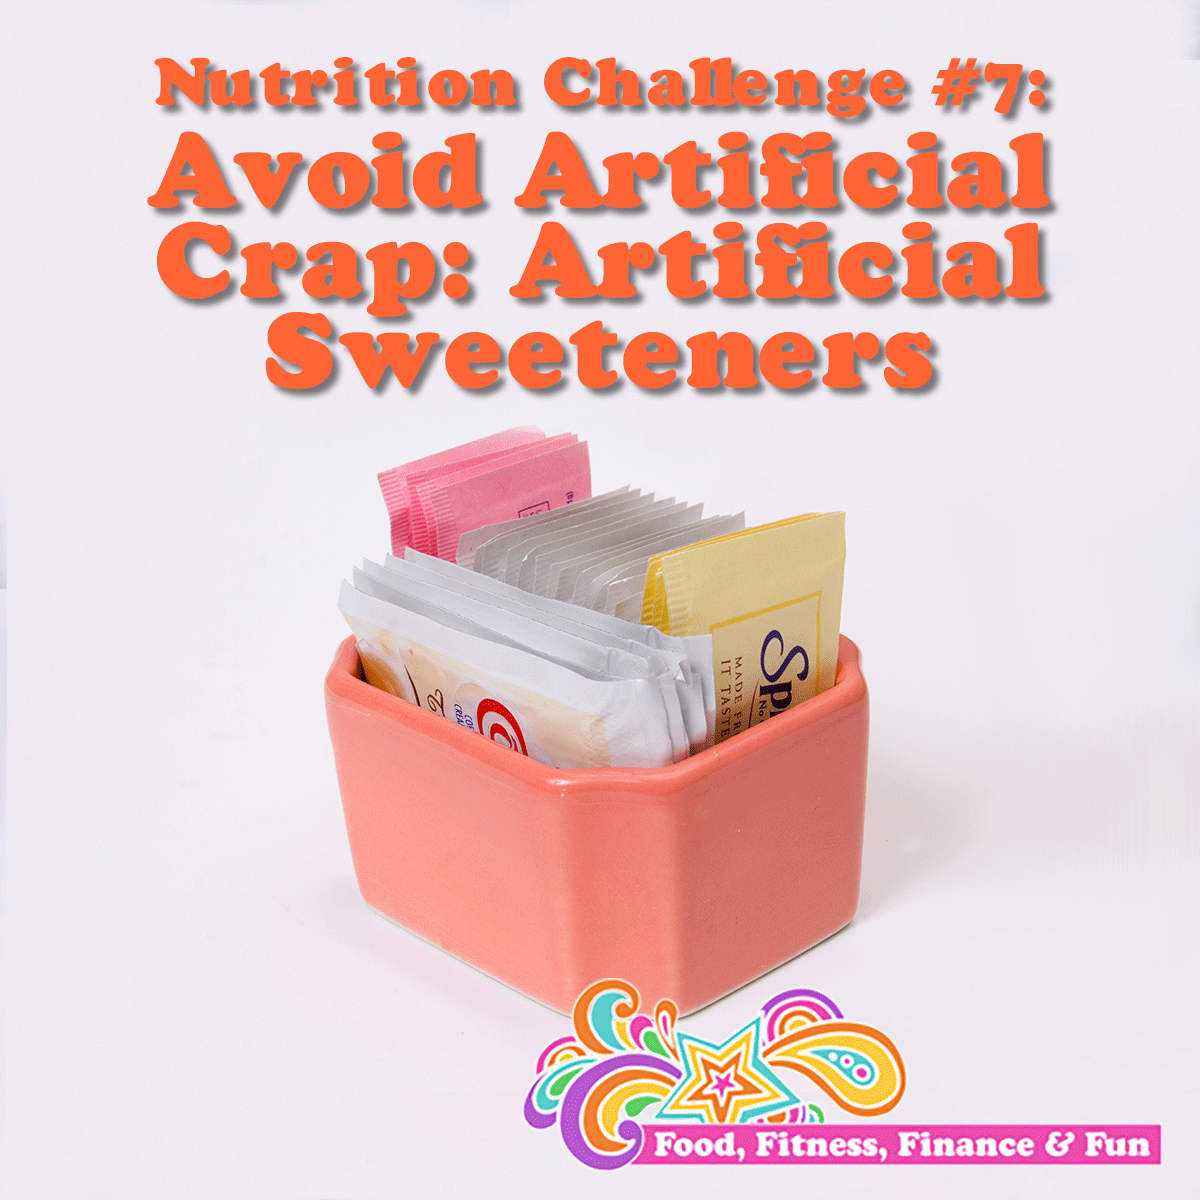 Nutrition Challenge - Avoid Artificial Crap: Artificial Sweeteners